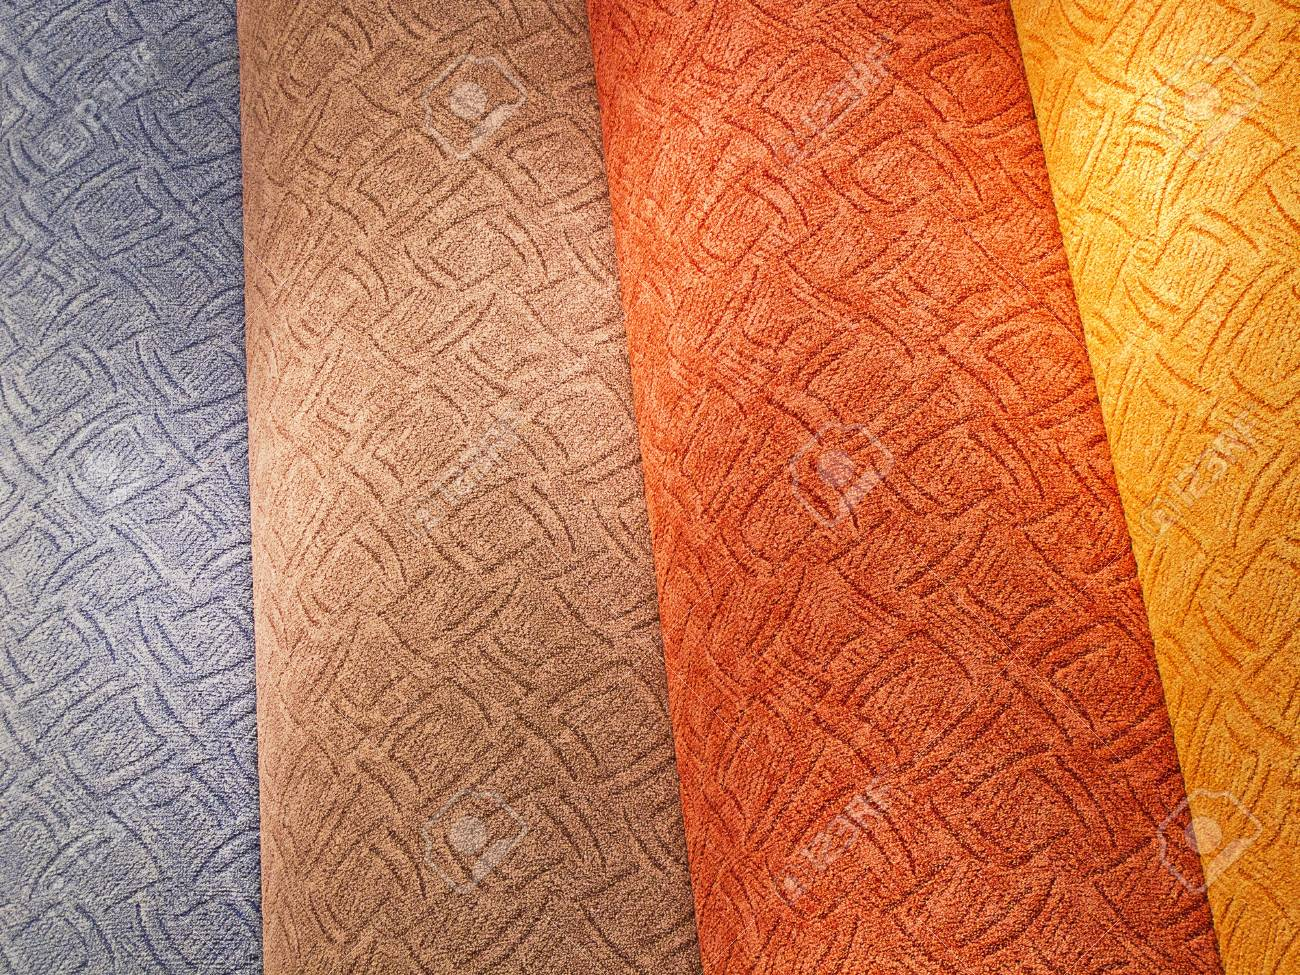 colorful carpet samples on the shelves Stock Photo - 9897623